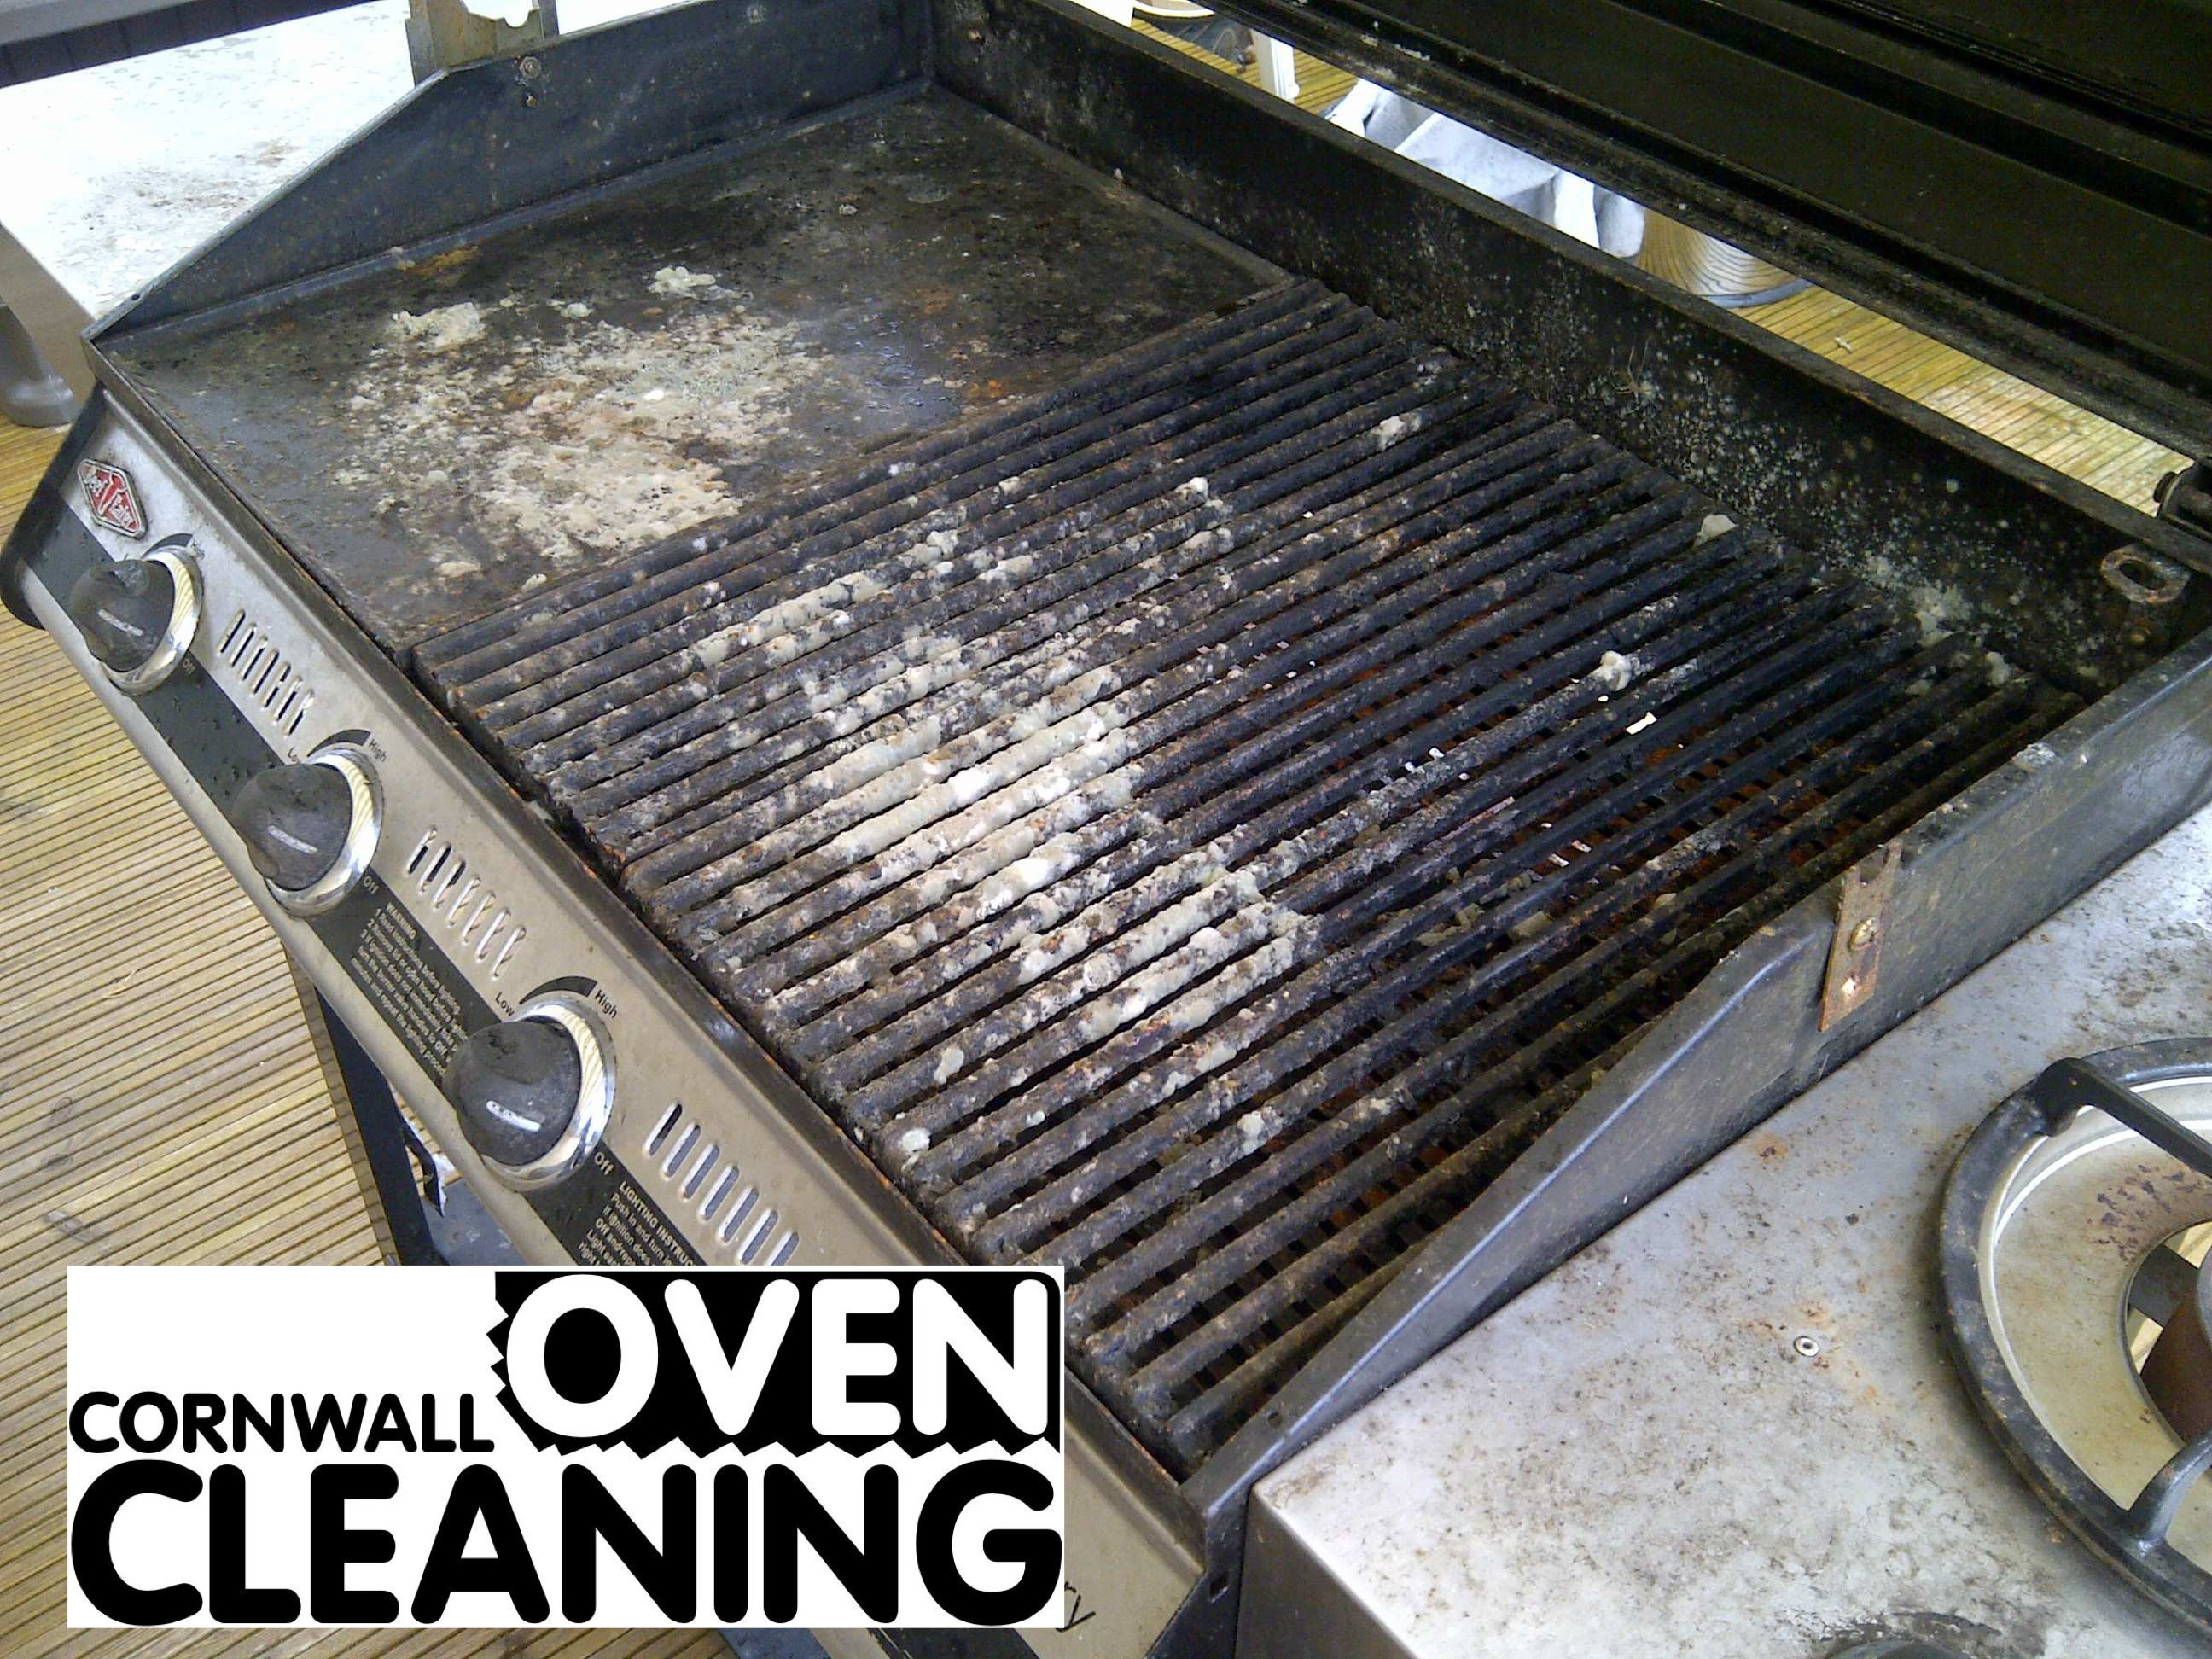 BBQ Cleaning Before Cornwall Oven Cleaning